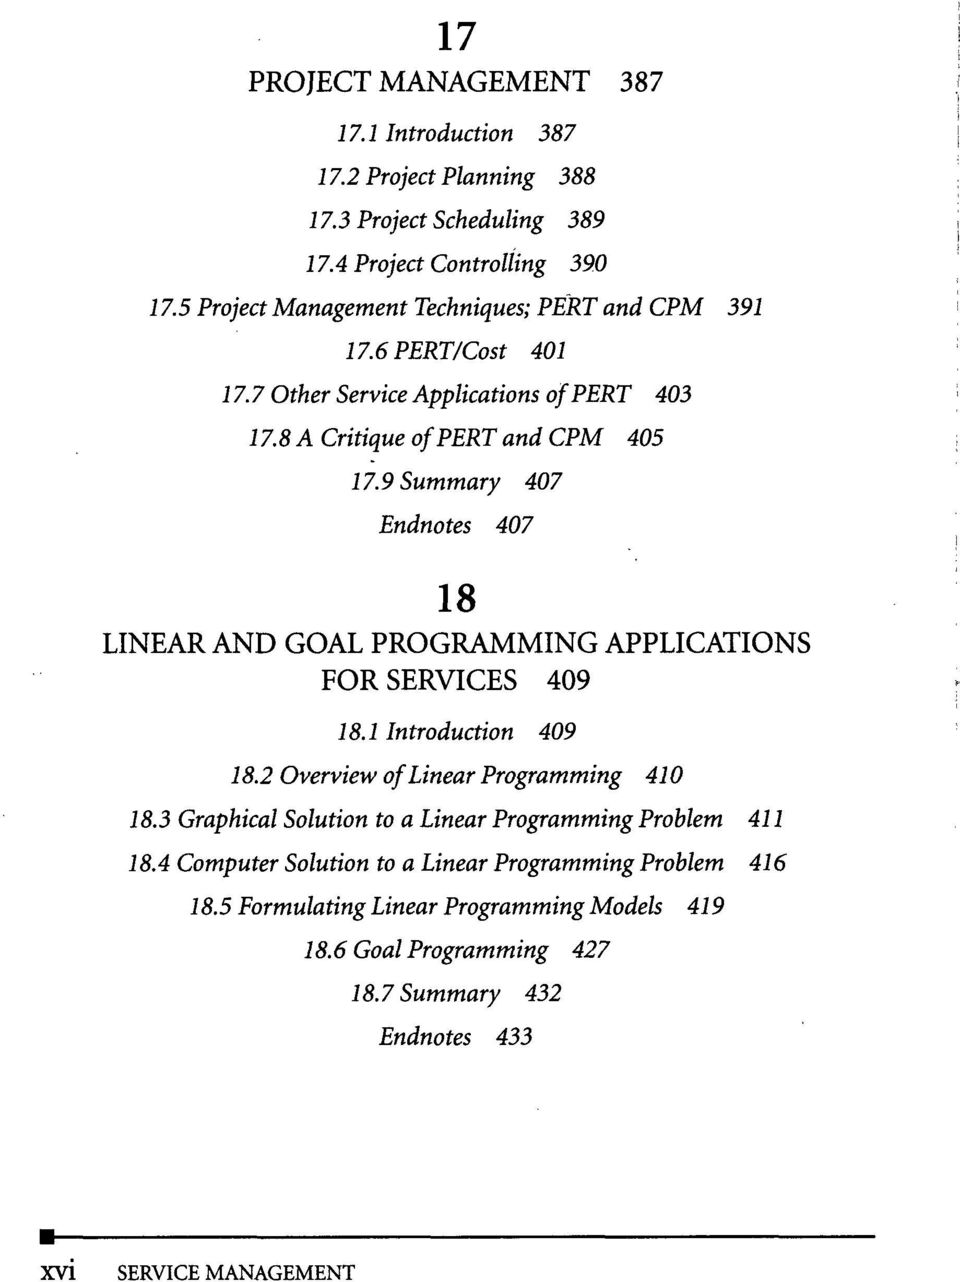 9 Summary 407 Endnotes 407 18 LINEAR AND GOAL PROGRAMMING APPLICATIONS FOR SERVICES 409 18.1 Introduction 409 18.2 Overview of Linear Programming 410 18.